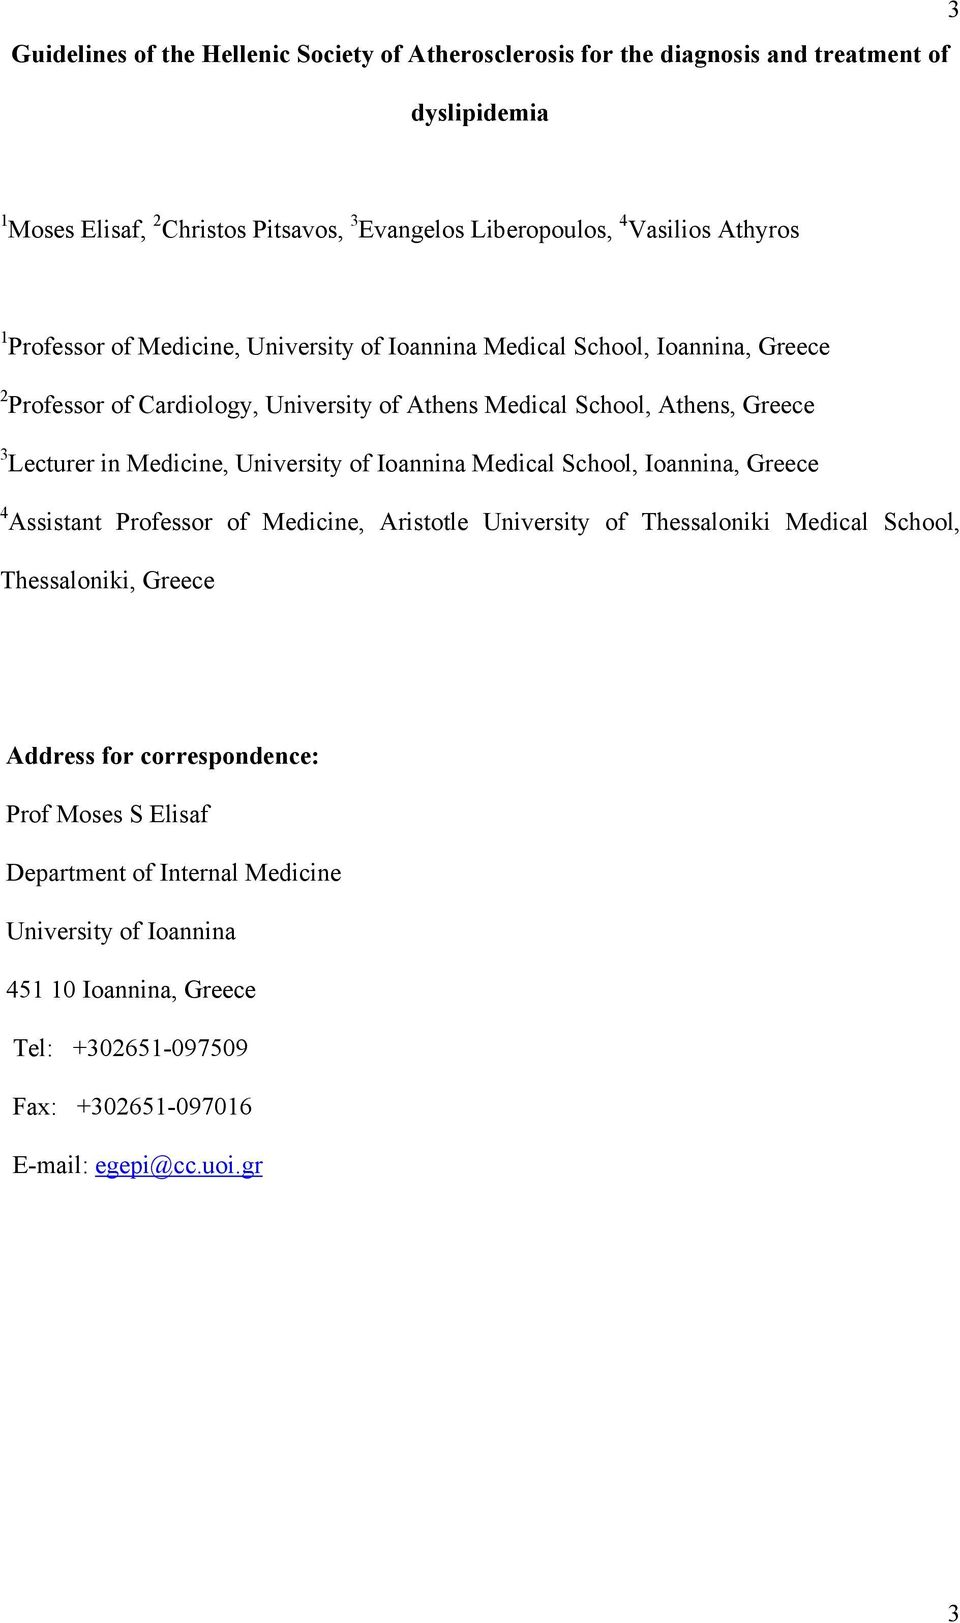 Medicine, University of Ioannina Medical School, Ioannina, Greece 4 Assistant Professor of Medicine, Aristotle University of Thessaloniki Medical School, Thessaloniki, Greece